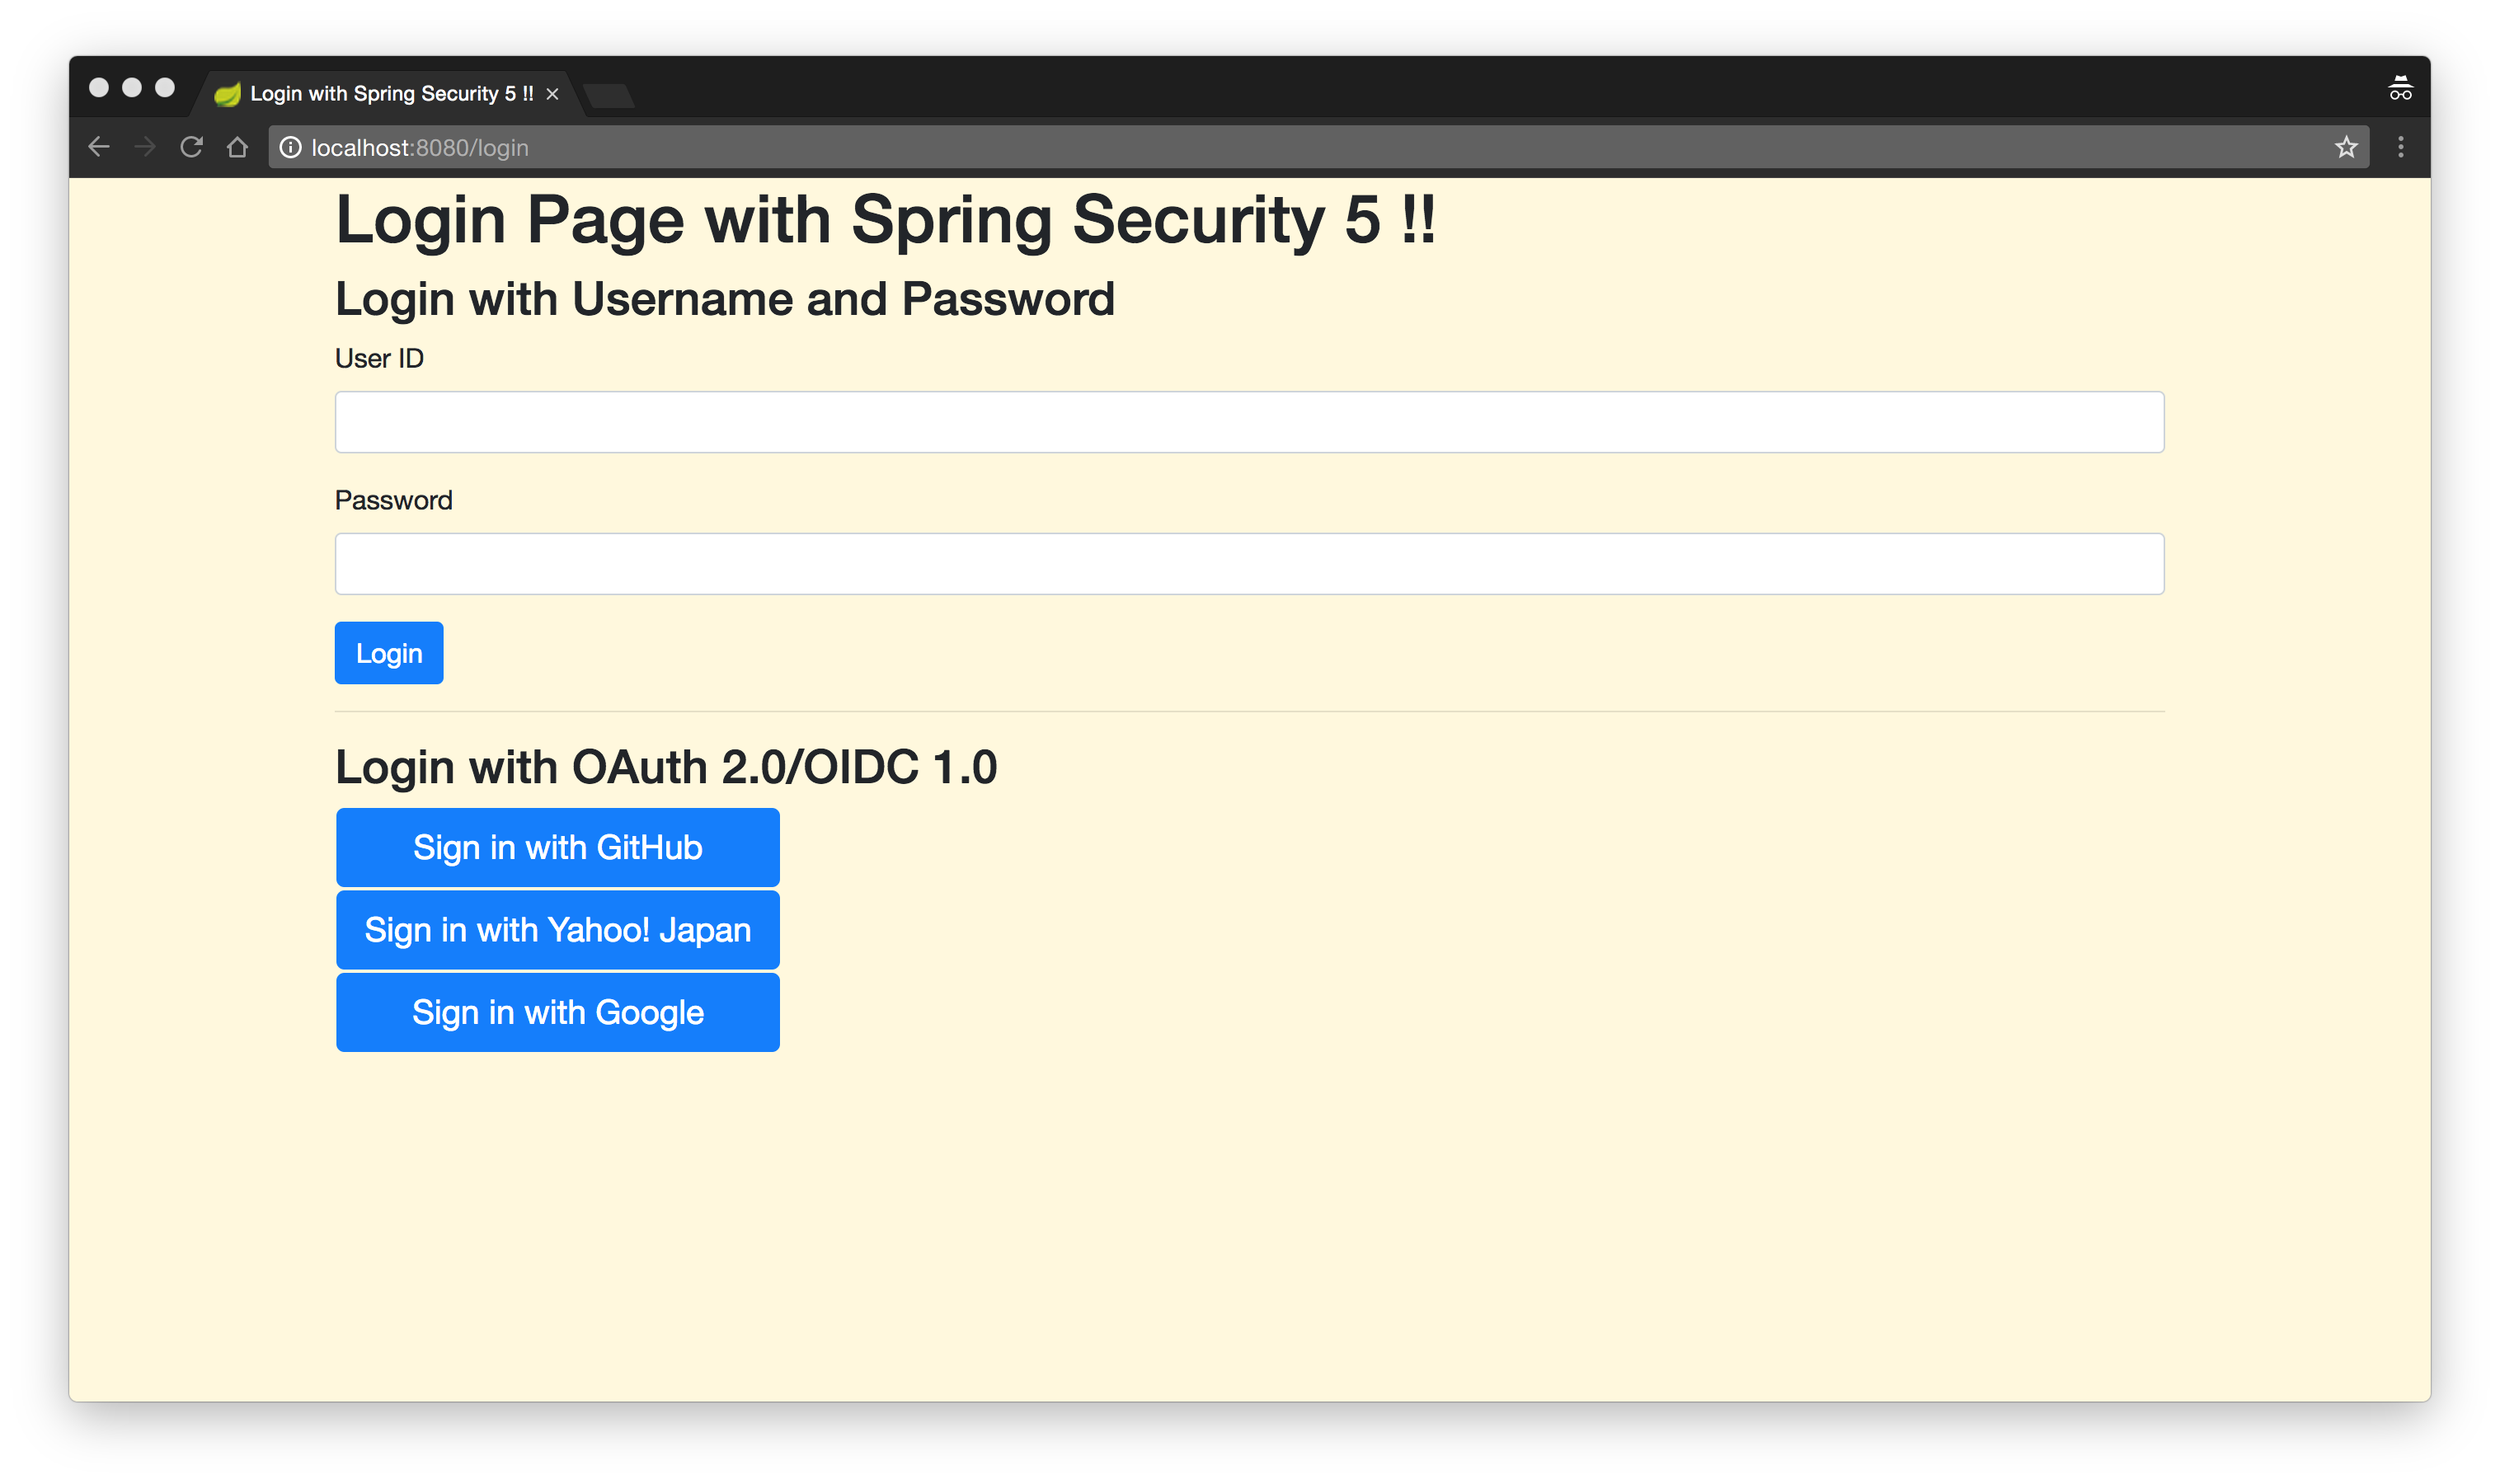 oauth2-customize-login-page.png